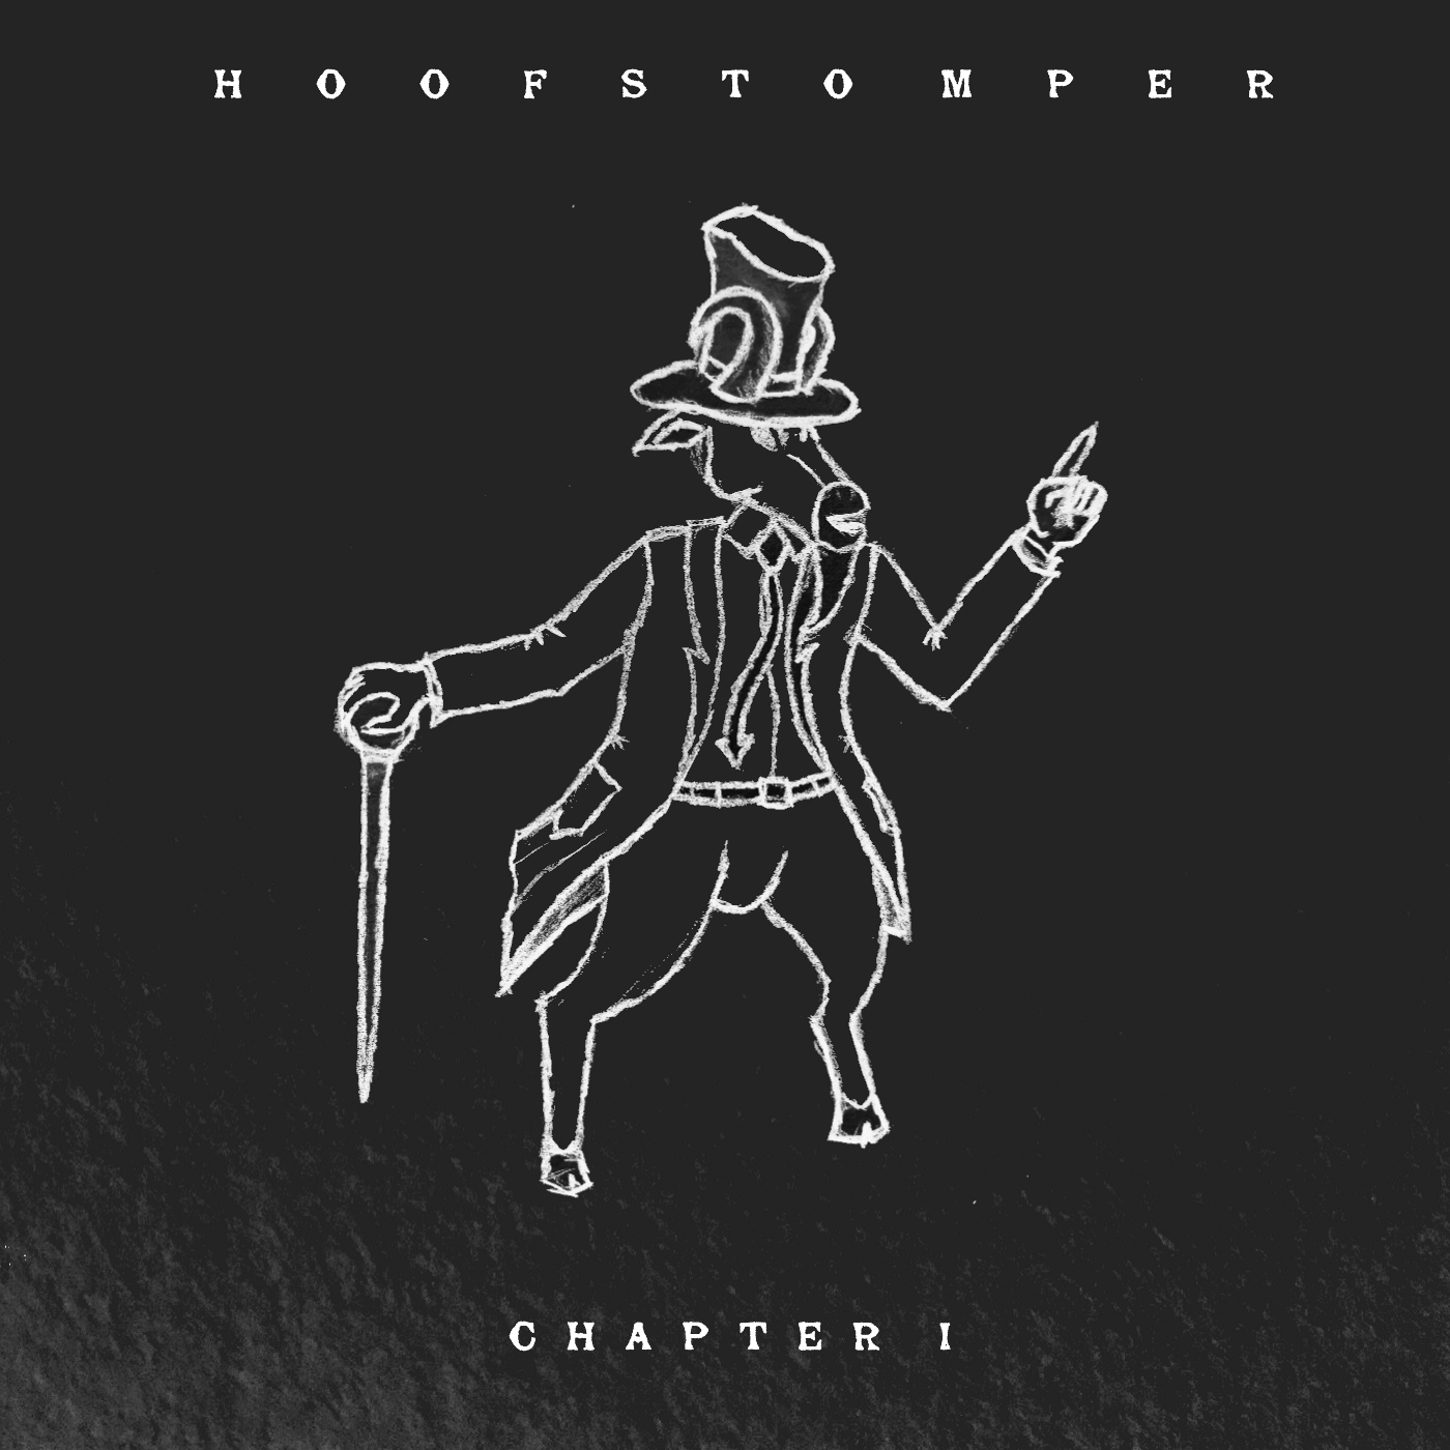 Hoofstomper - Chapter I coverart